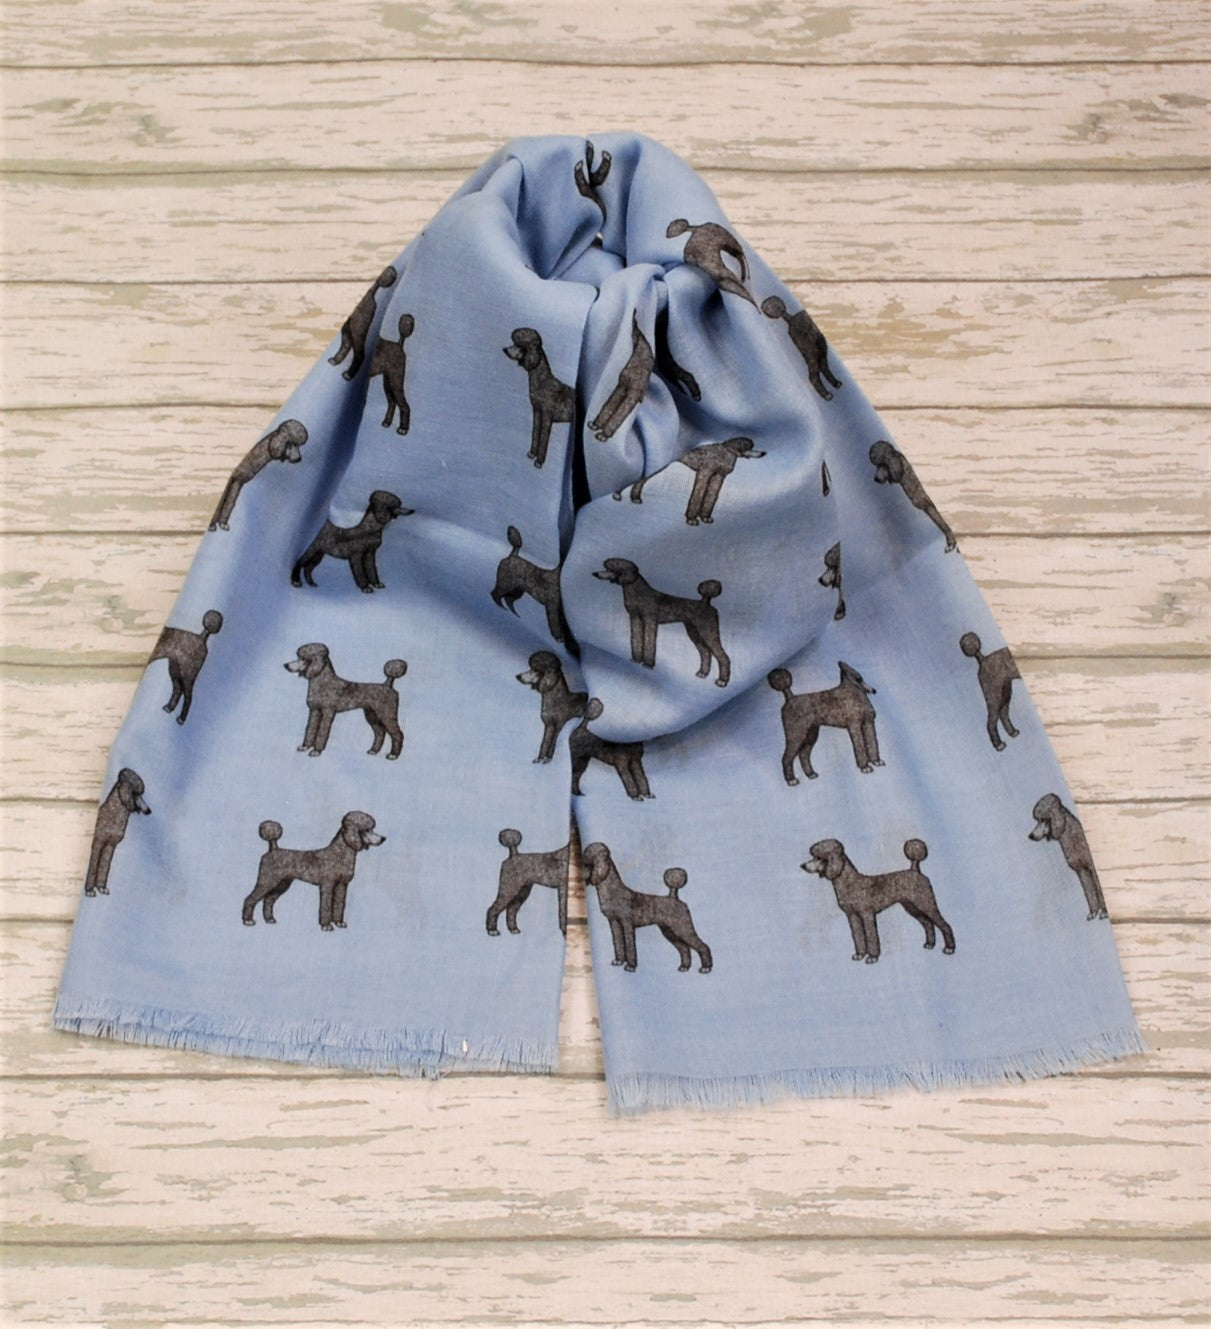 Poodle scarf hand printed in the UK